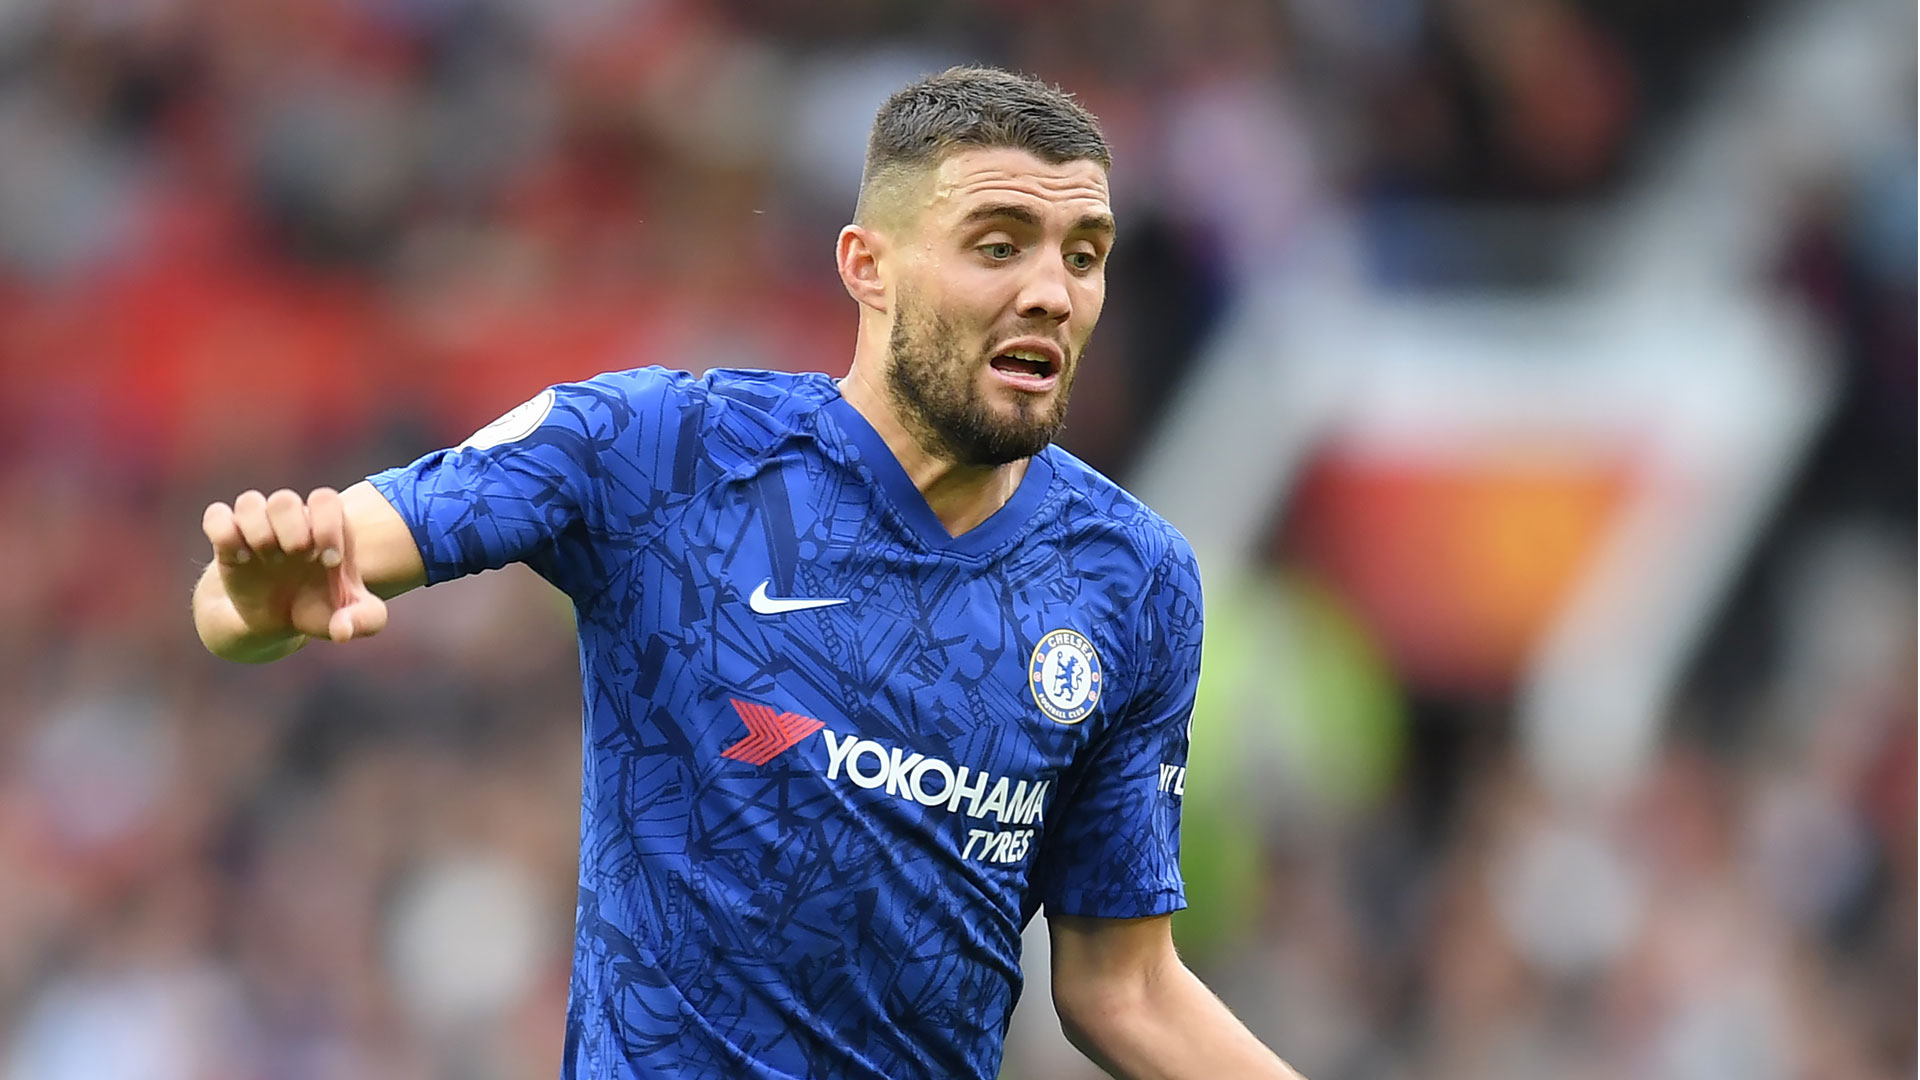 'Scoring is the next step for Kovacic' - Lampard calls for Chelsea ace to add goals to his game